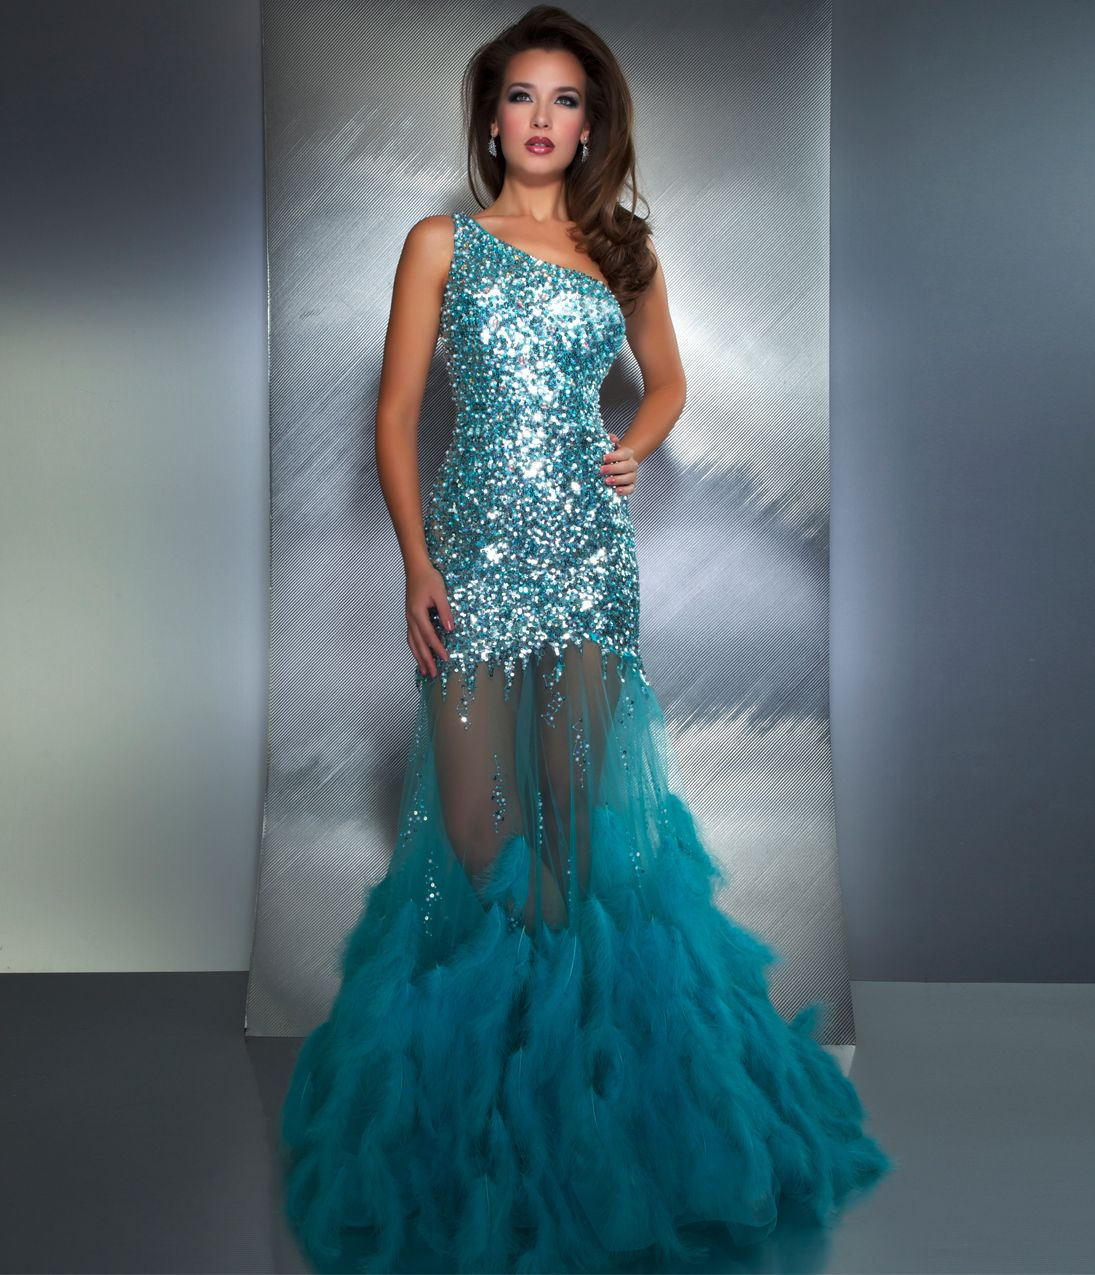 Images of Mermaid Prom Dresses - The Fashions Of Paradise